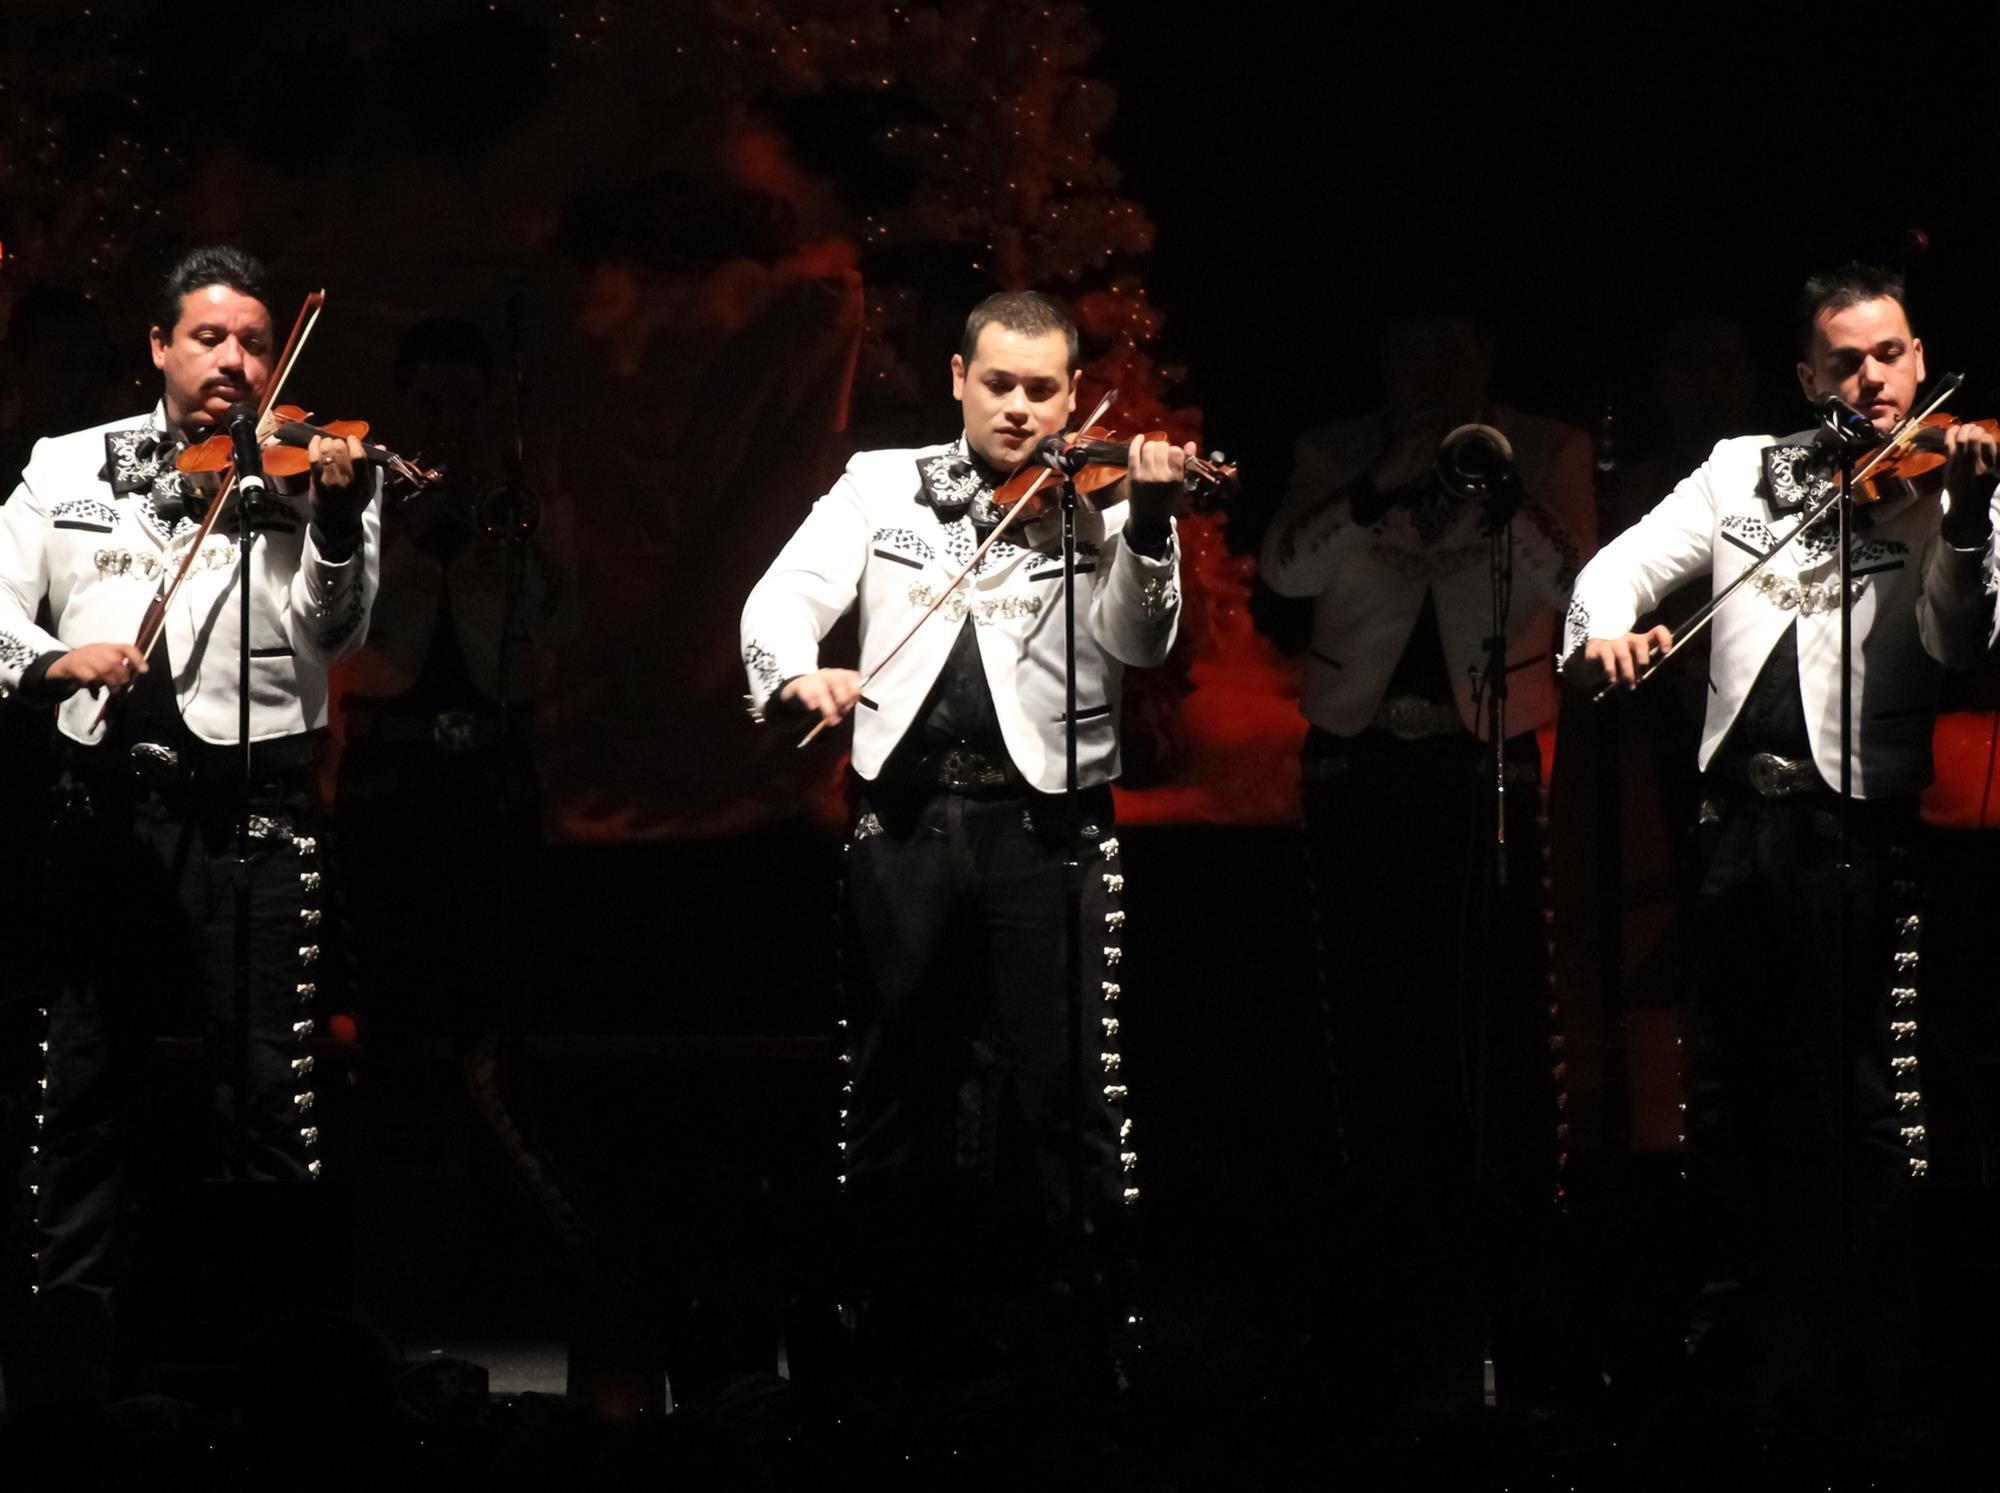 Mariachi musicians on stage